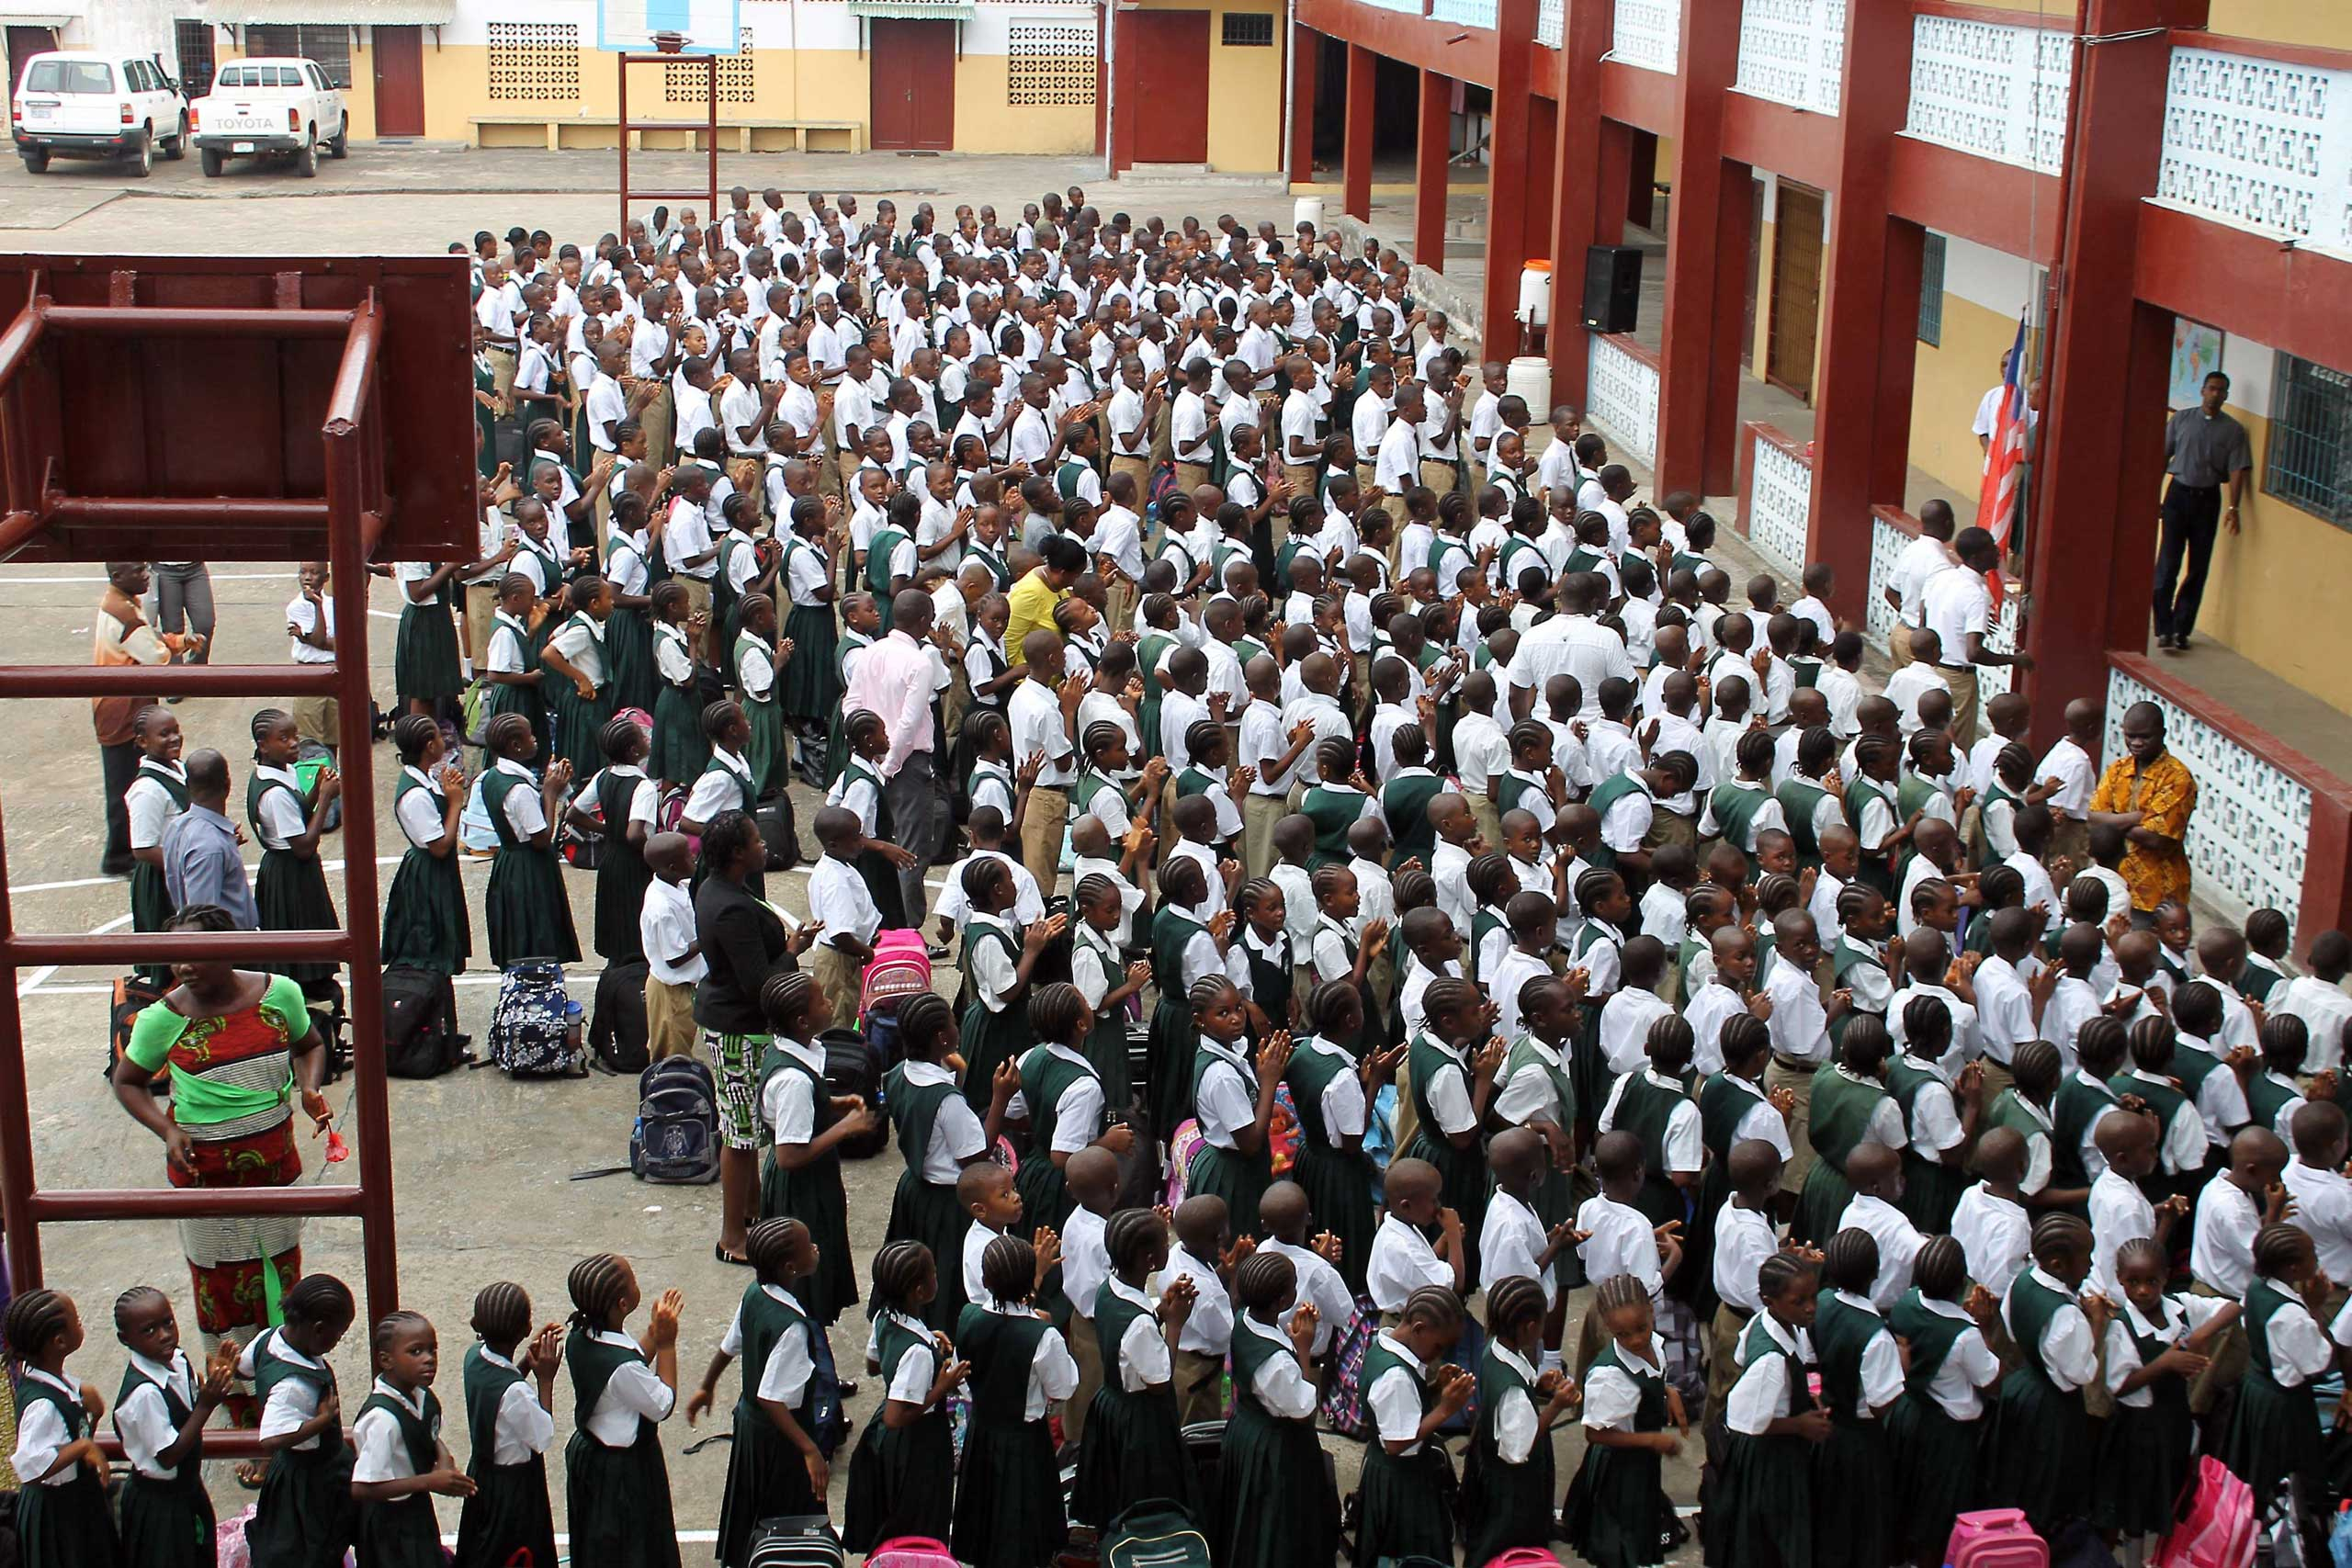 Students stand in line before heading to their classrooms at Don Bosco High School in the Liberian capital, Monrovia, on Feb. 16, 2015